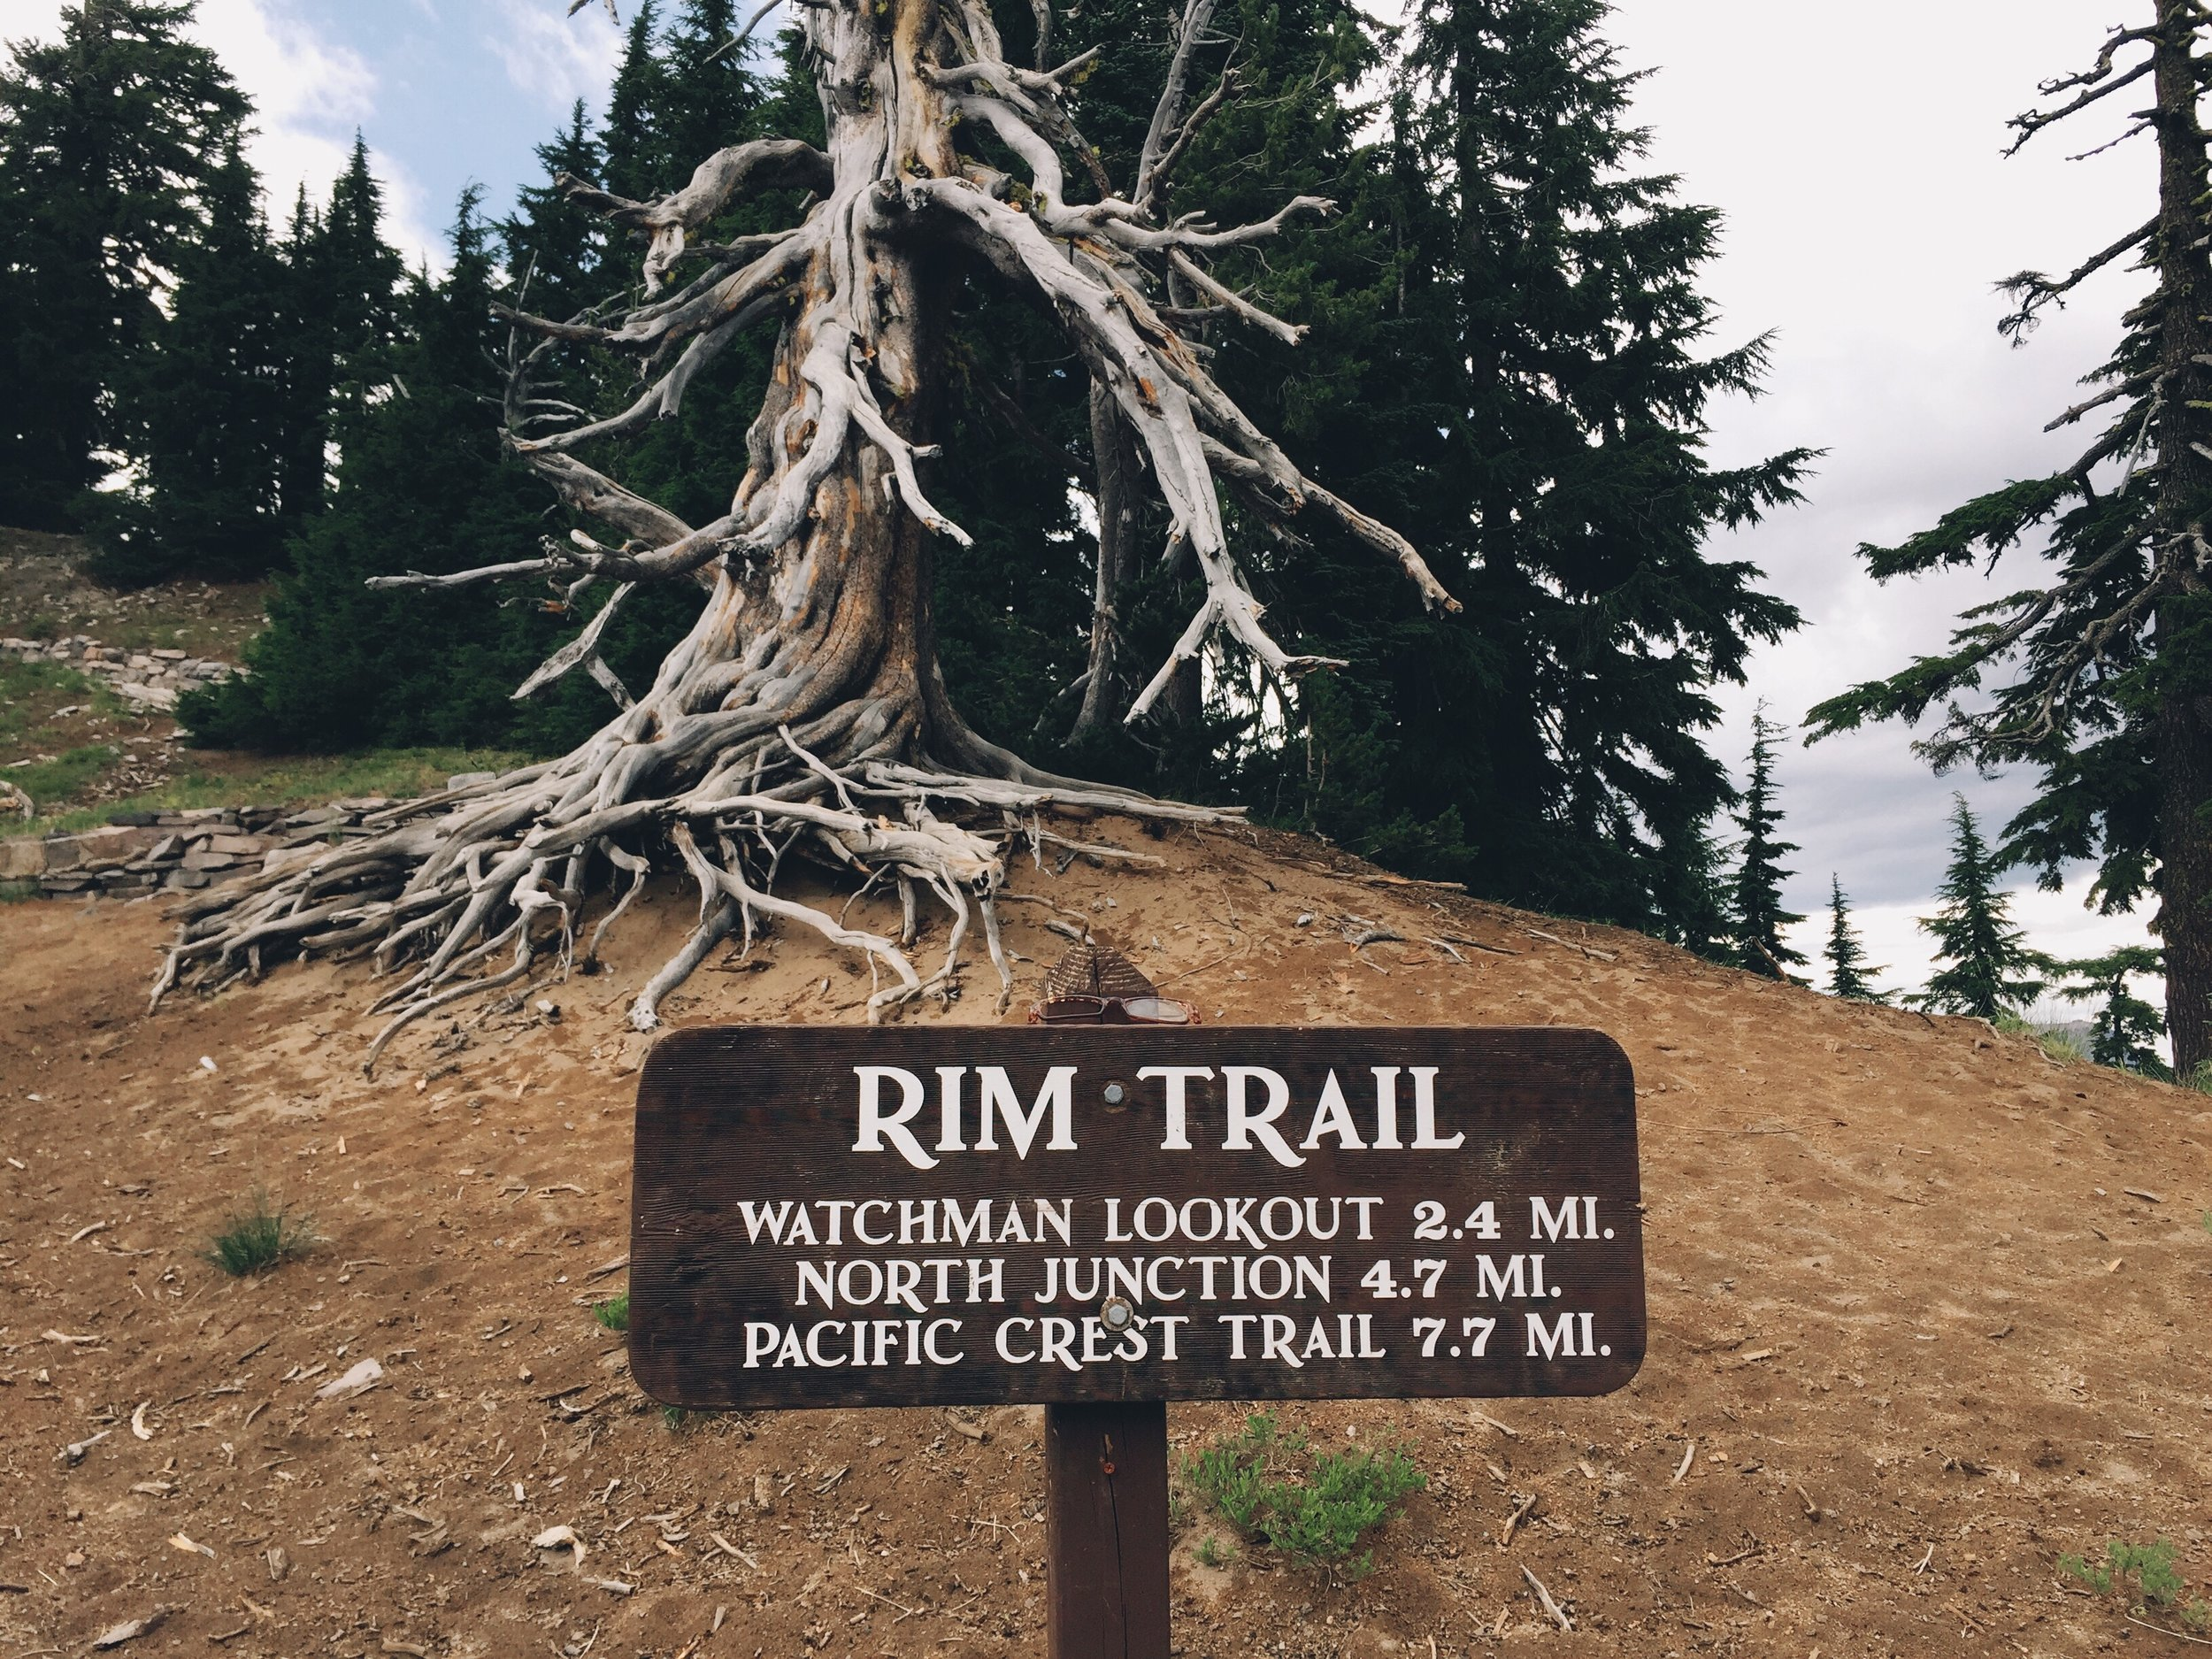 The rim trail is the way to go.